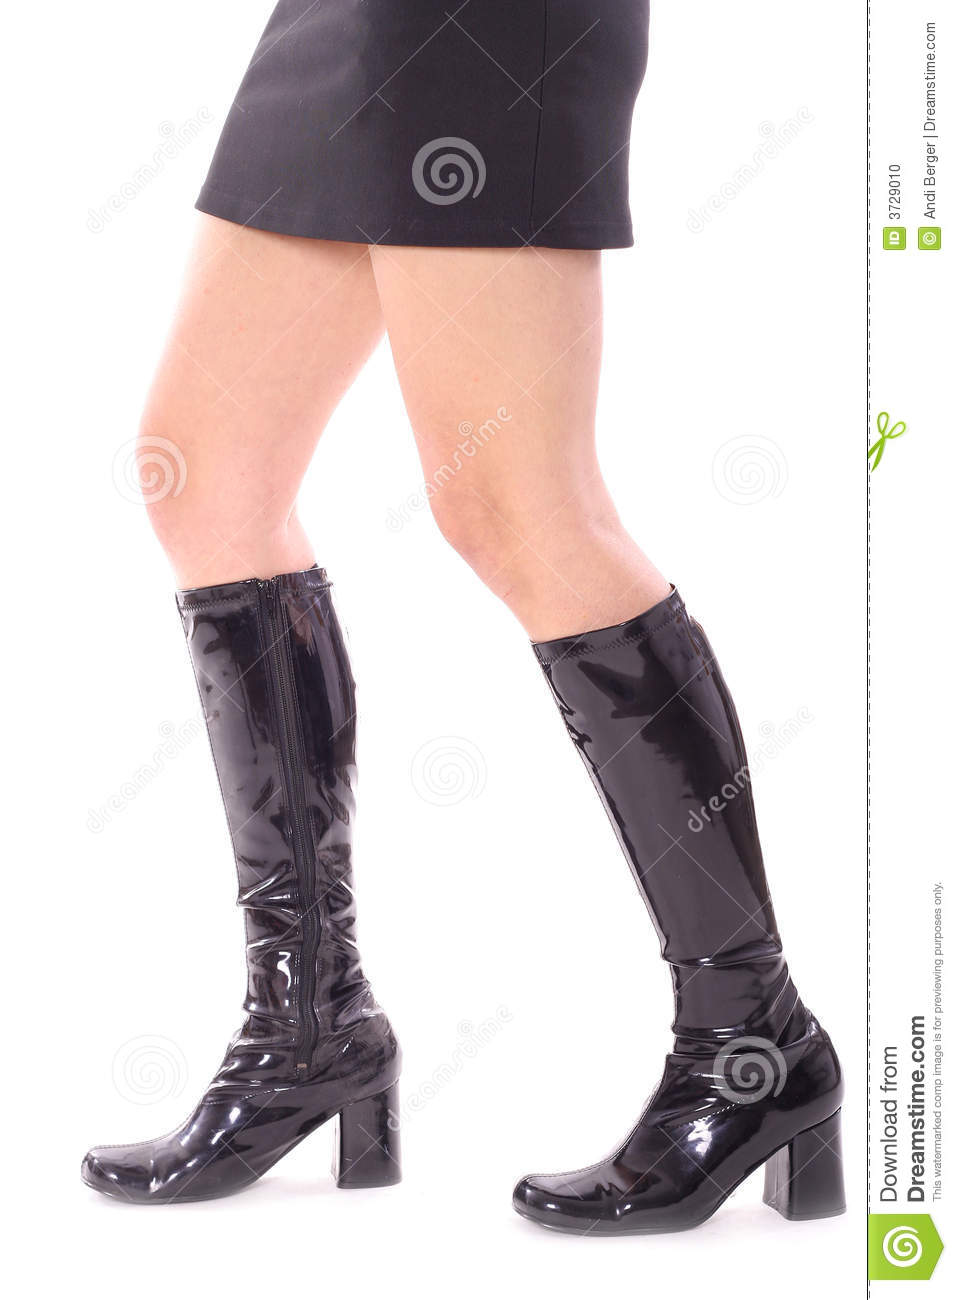 Sexy legs walking in leather boots isolated on a white background.